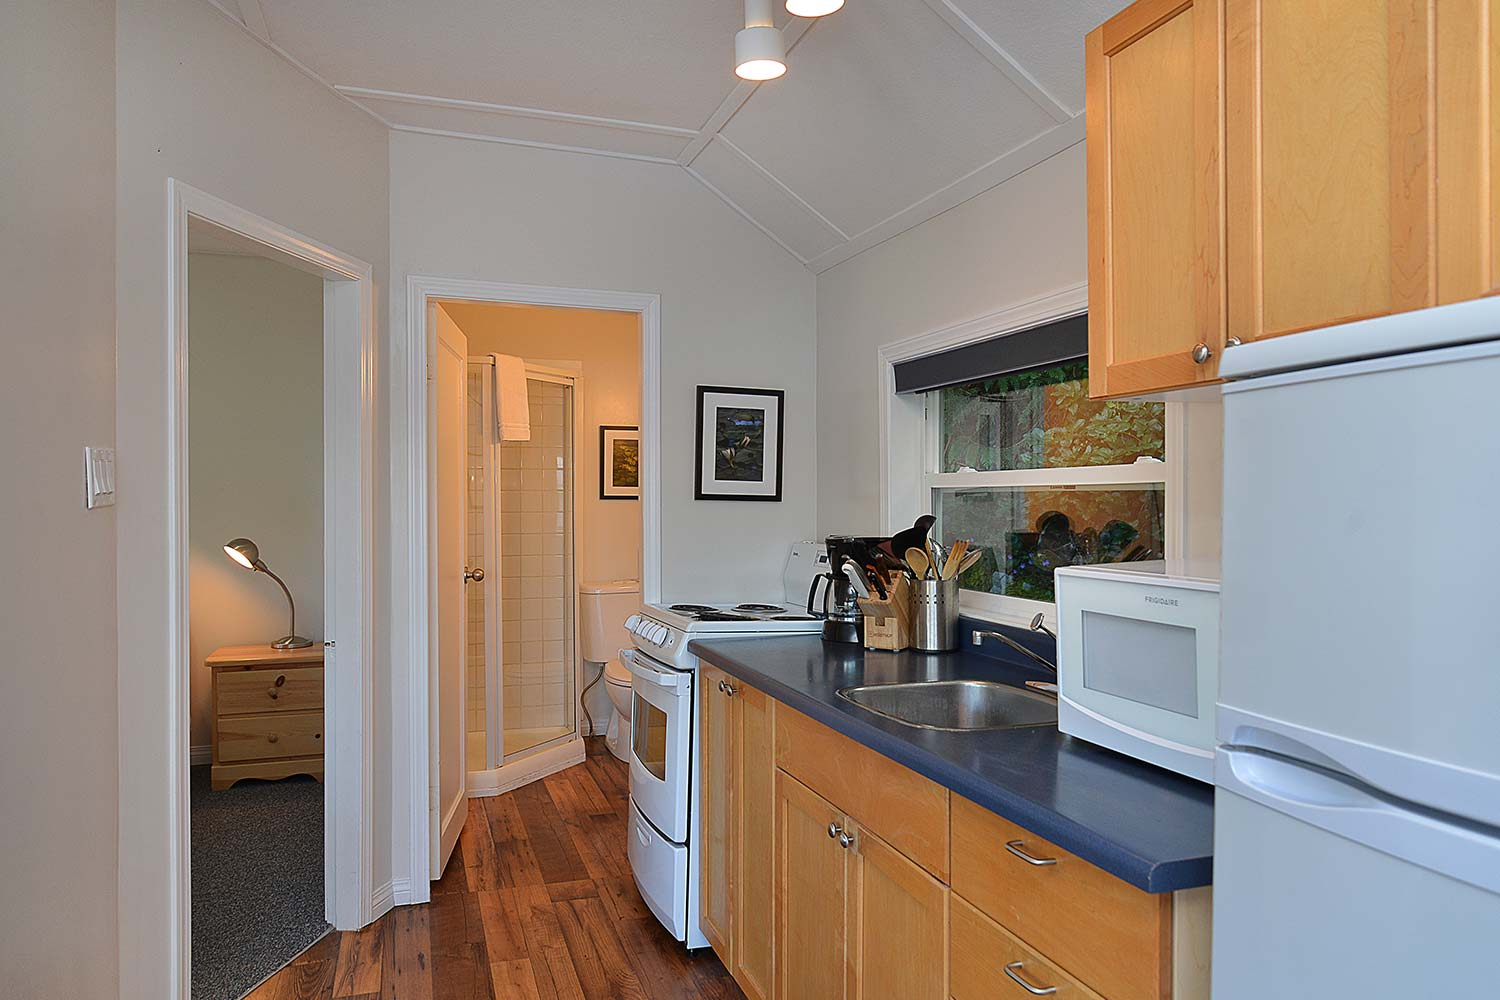 The fully furnished kitchenette and bathroom of the 1-Bedroom Prawn Palace weekend cottage.